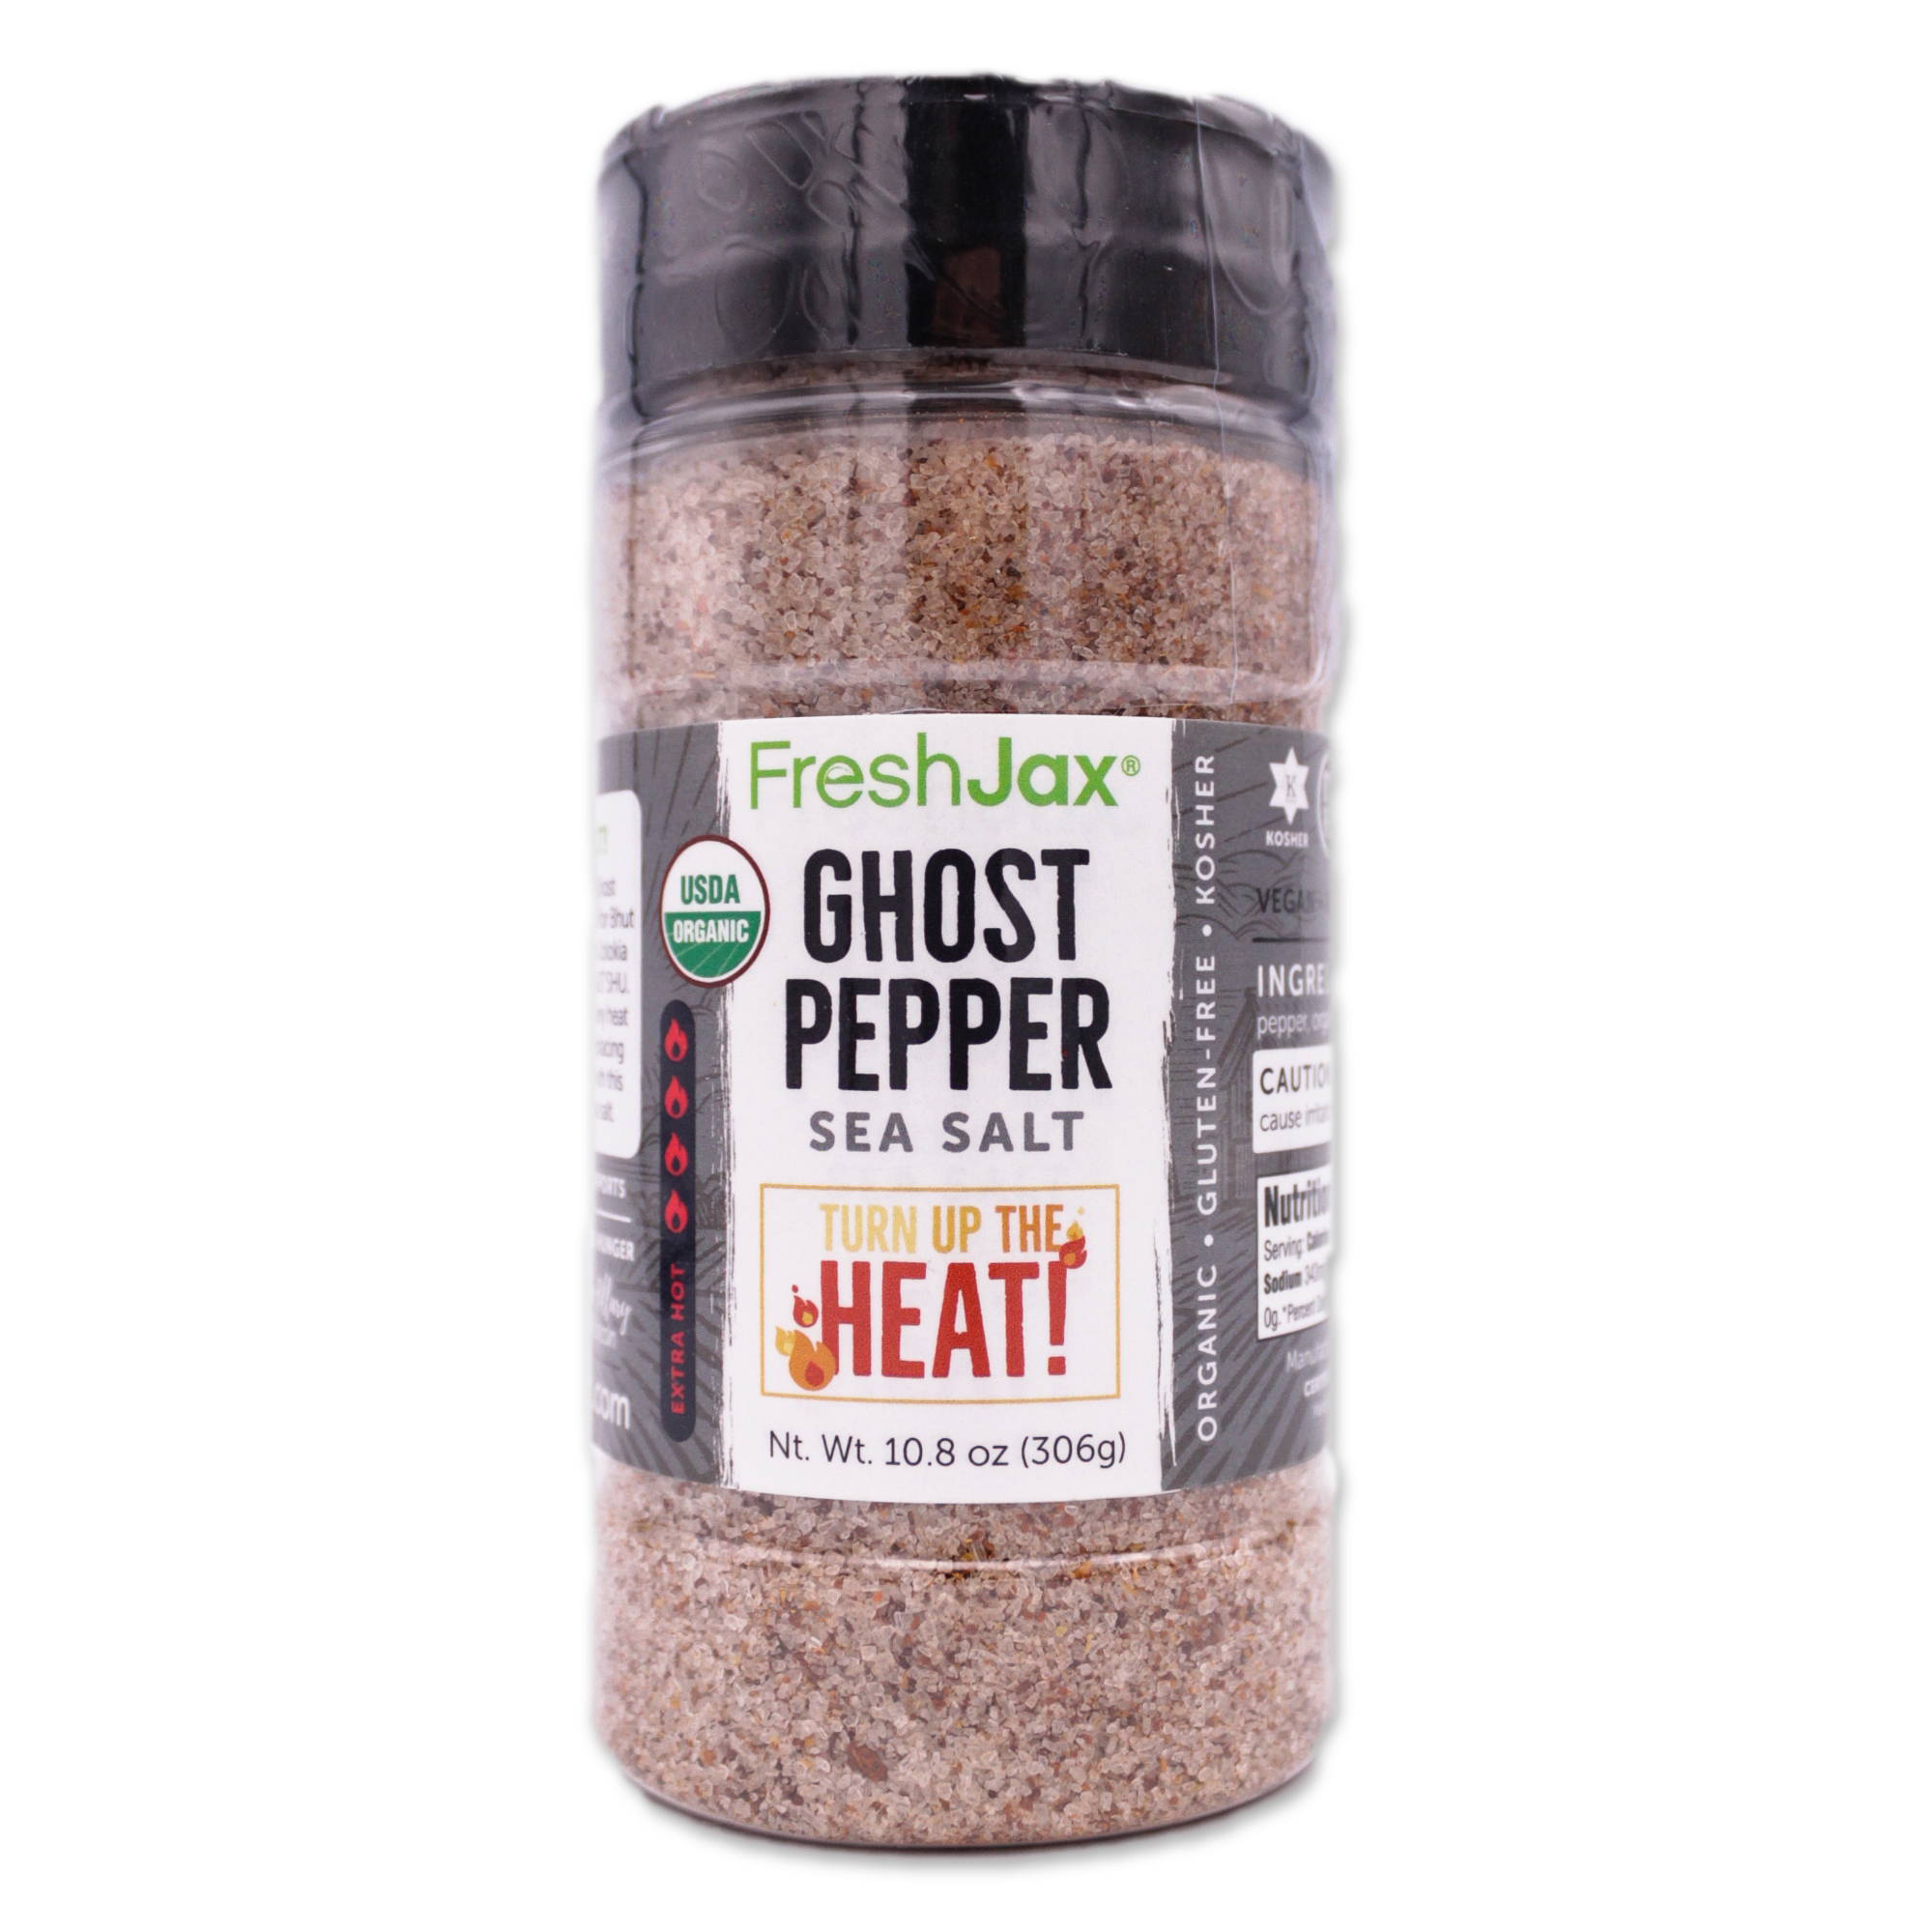 Ghost Pepper Sea Salt FreshJax Organic Spices